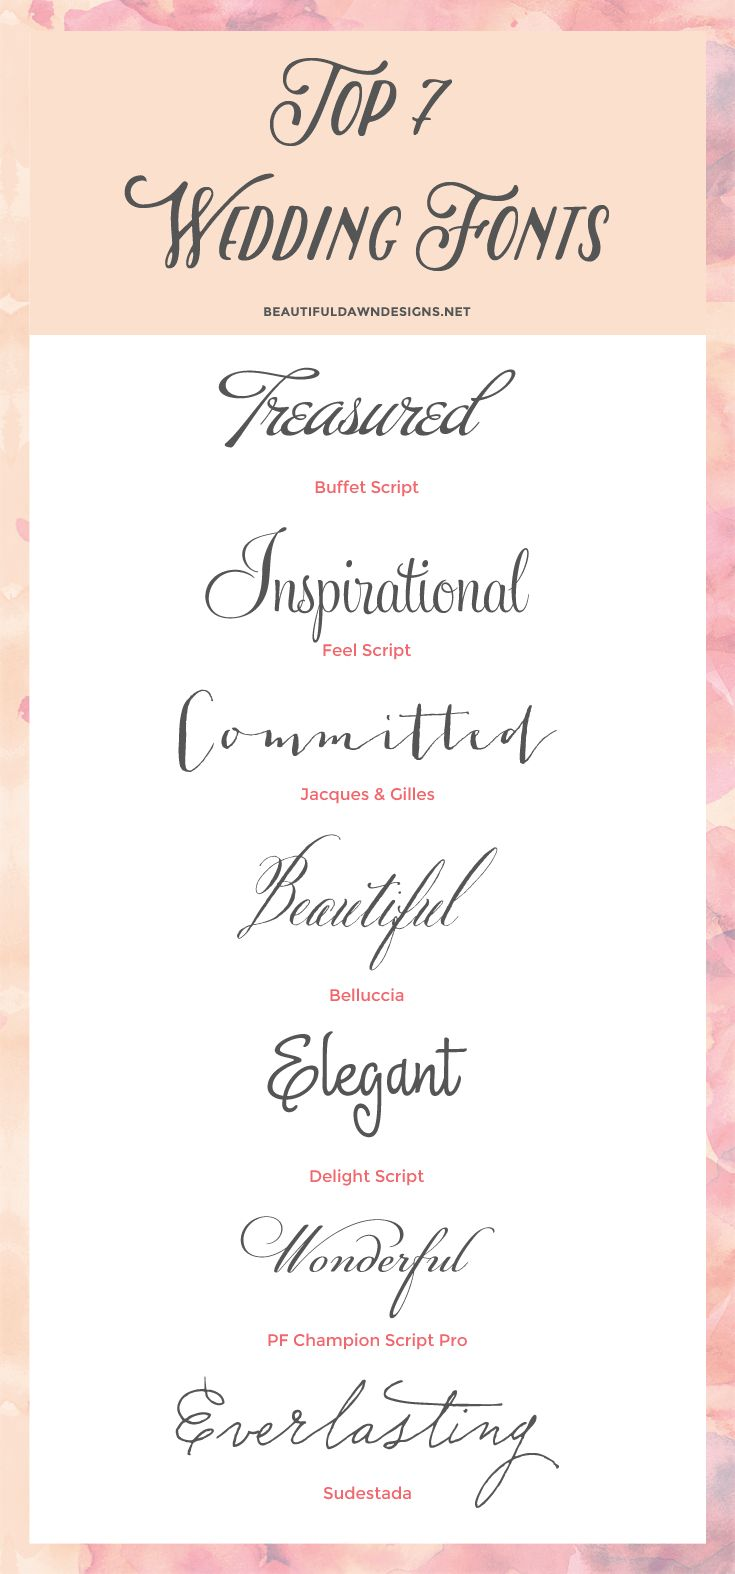 These script fonts would be perfect for wedding invitations or save the date cards.